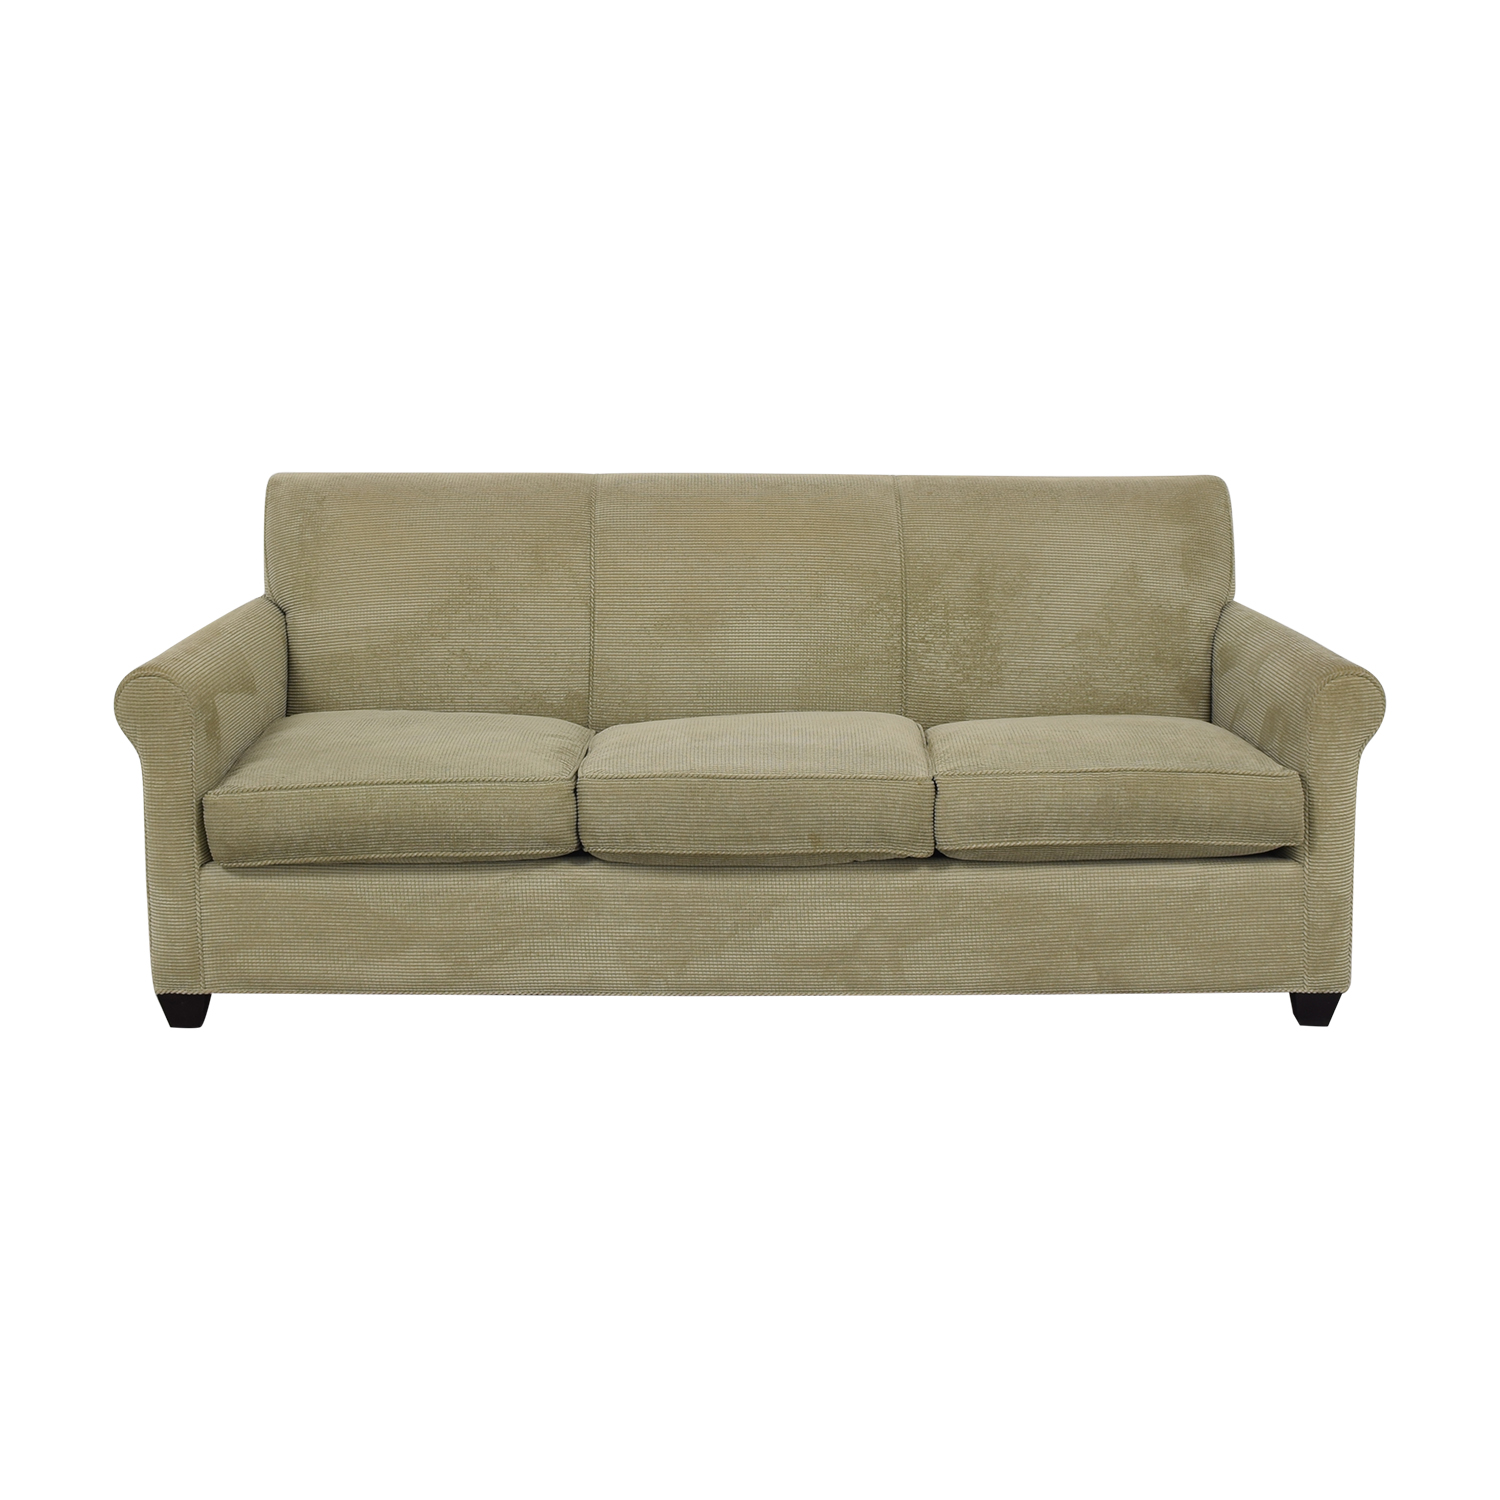 buy Crate & Barrel Three Seat Sofa Crate & Barrel Sofas